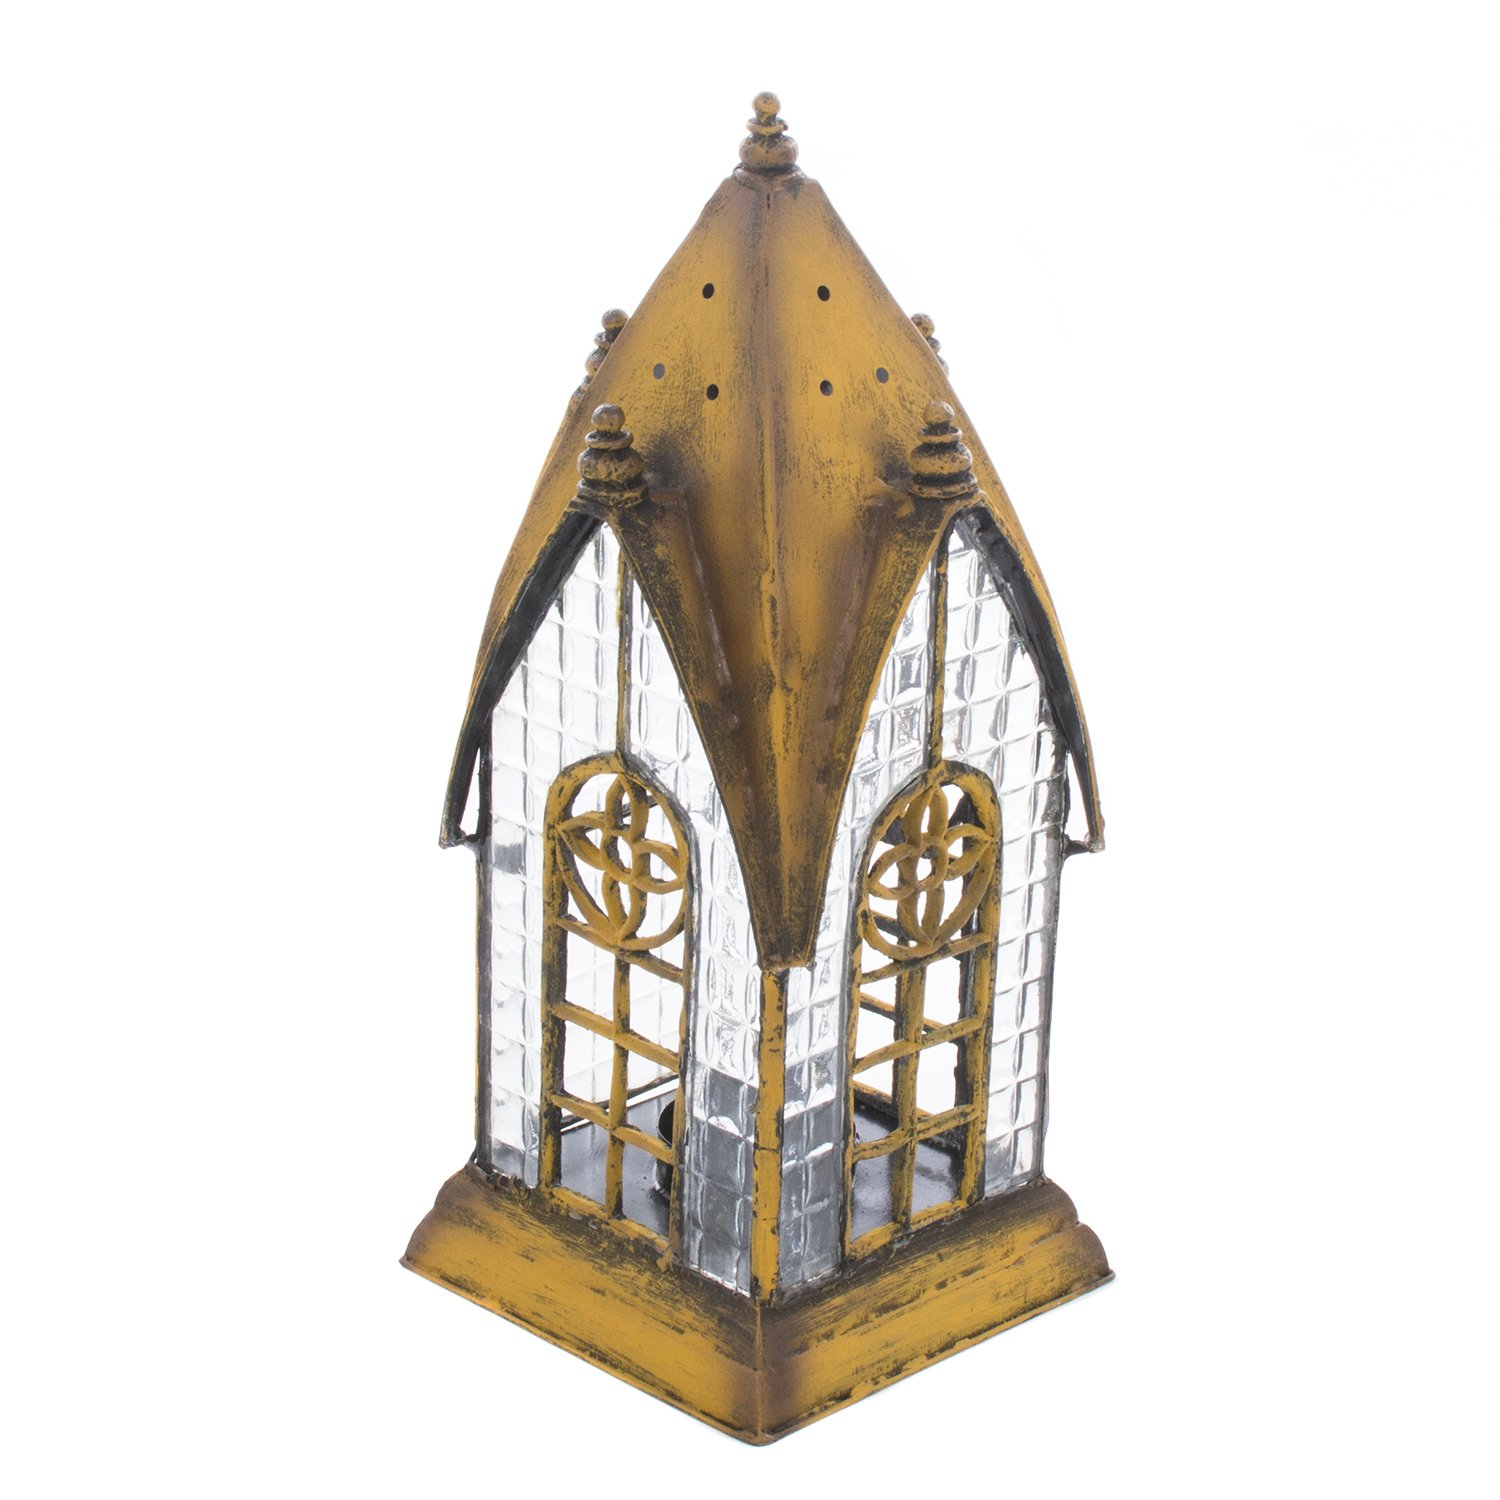 English Pembroke Yellow Architectural Lantern Tea Light Candle Holder - ChristmasTablescapeDecor.com